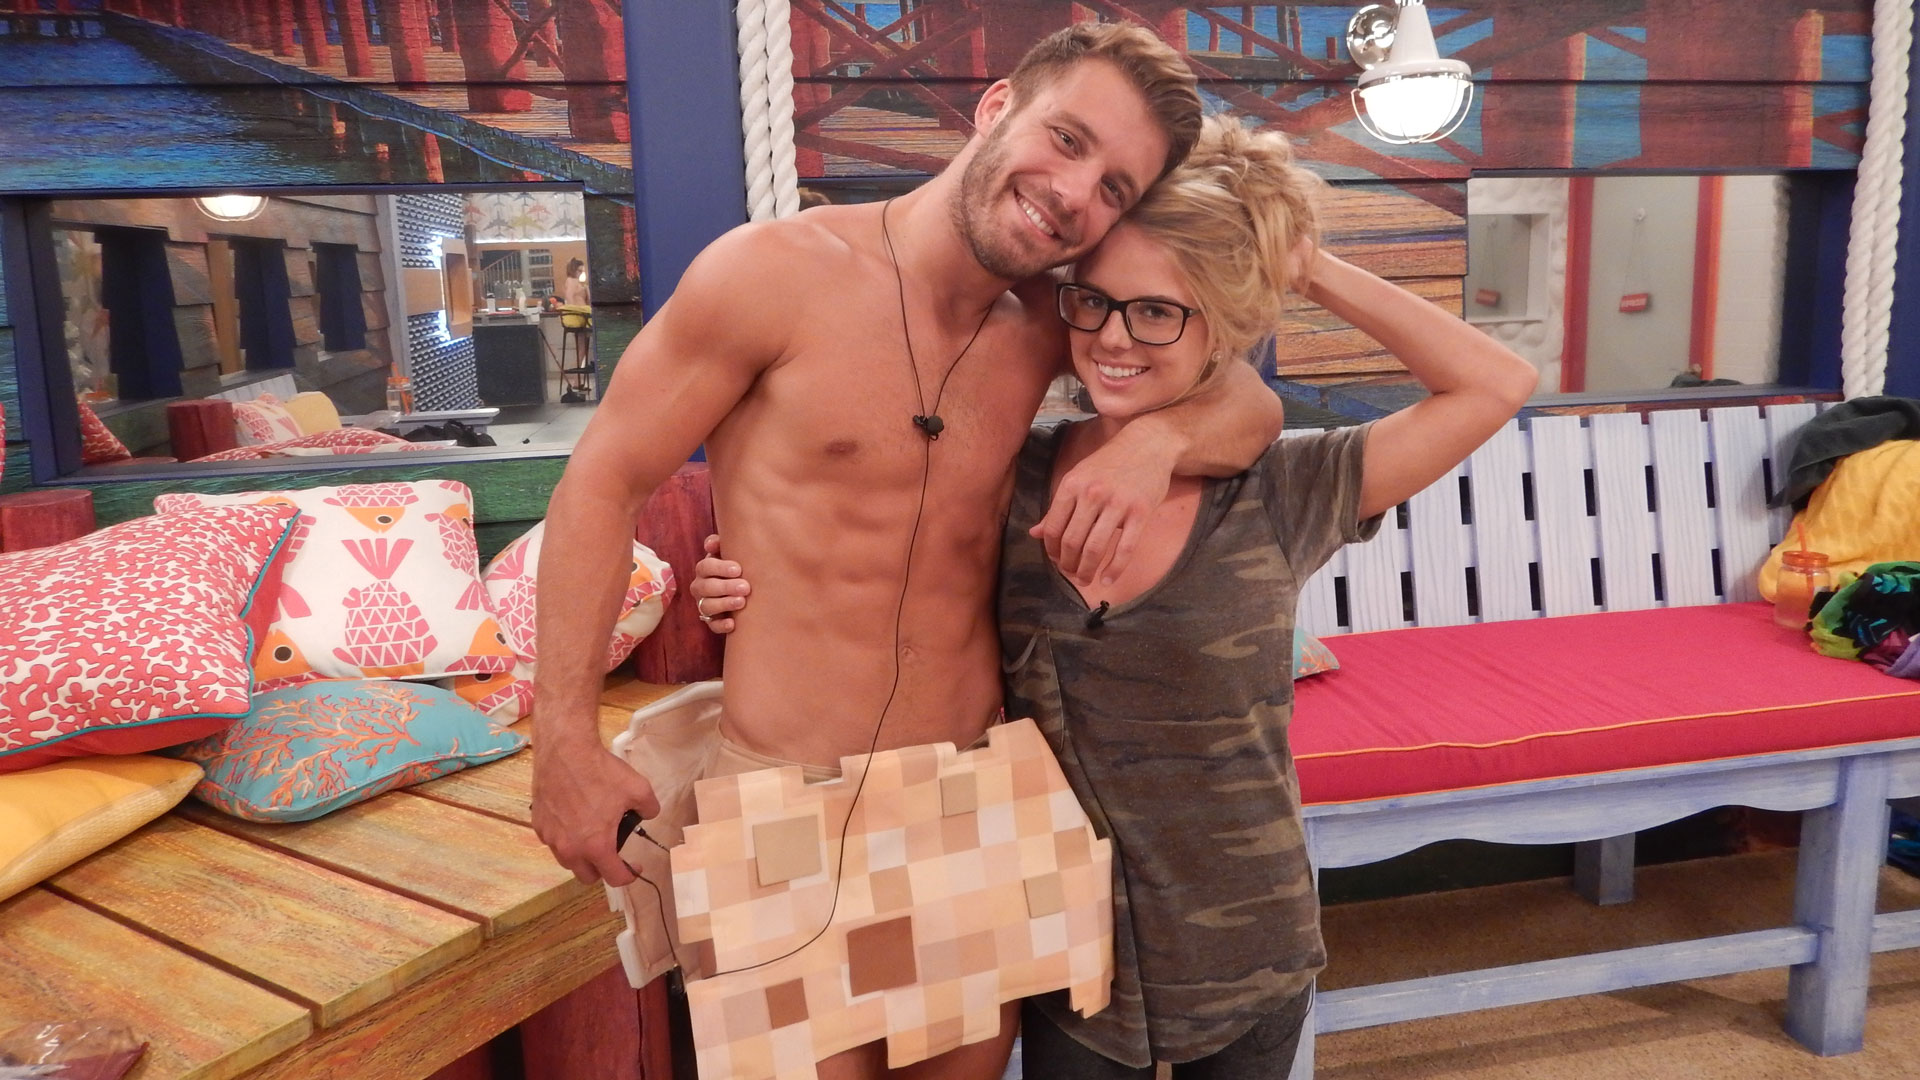 Paulie cozies up to Nicole for a snapshot.